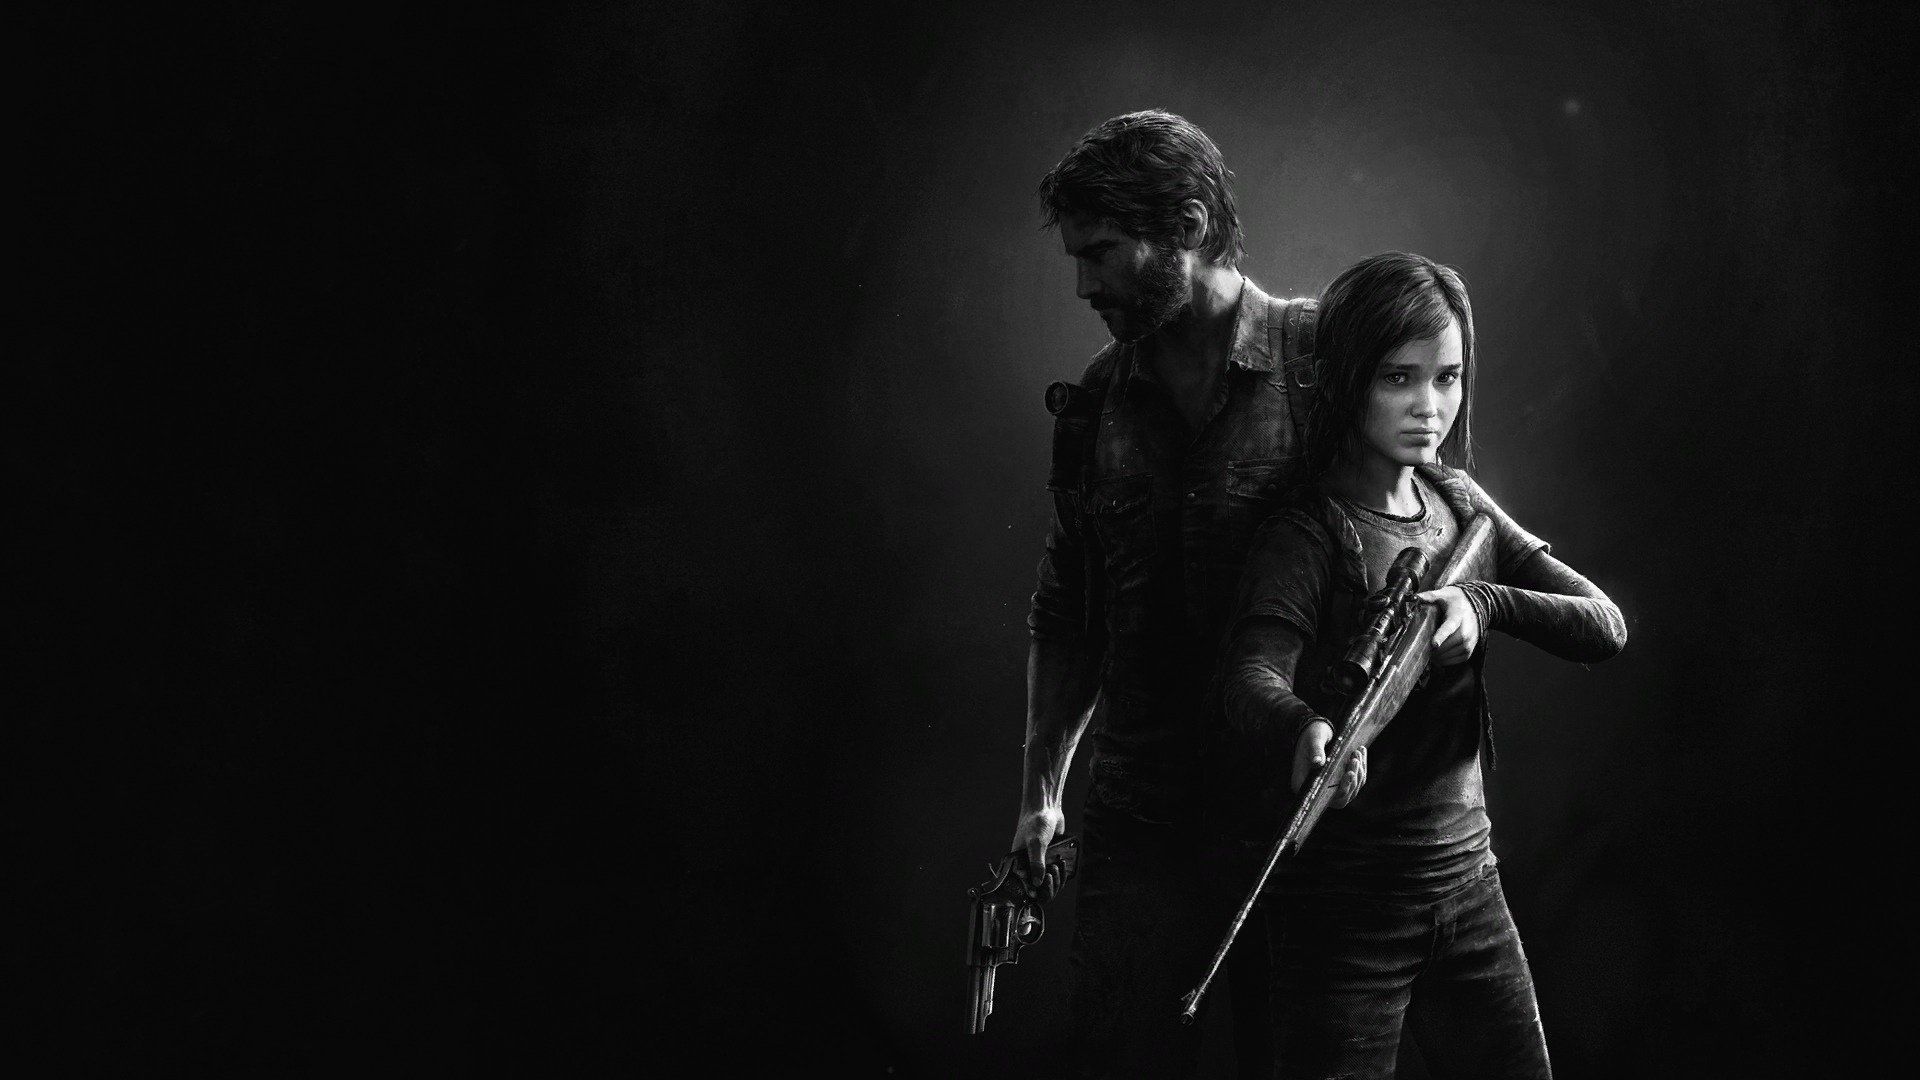 10 HD The Last of Us Game Wallpapers - HDWallSource.com